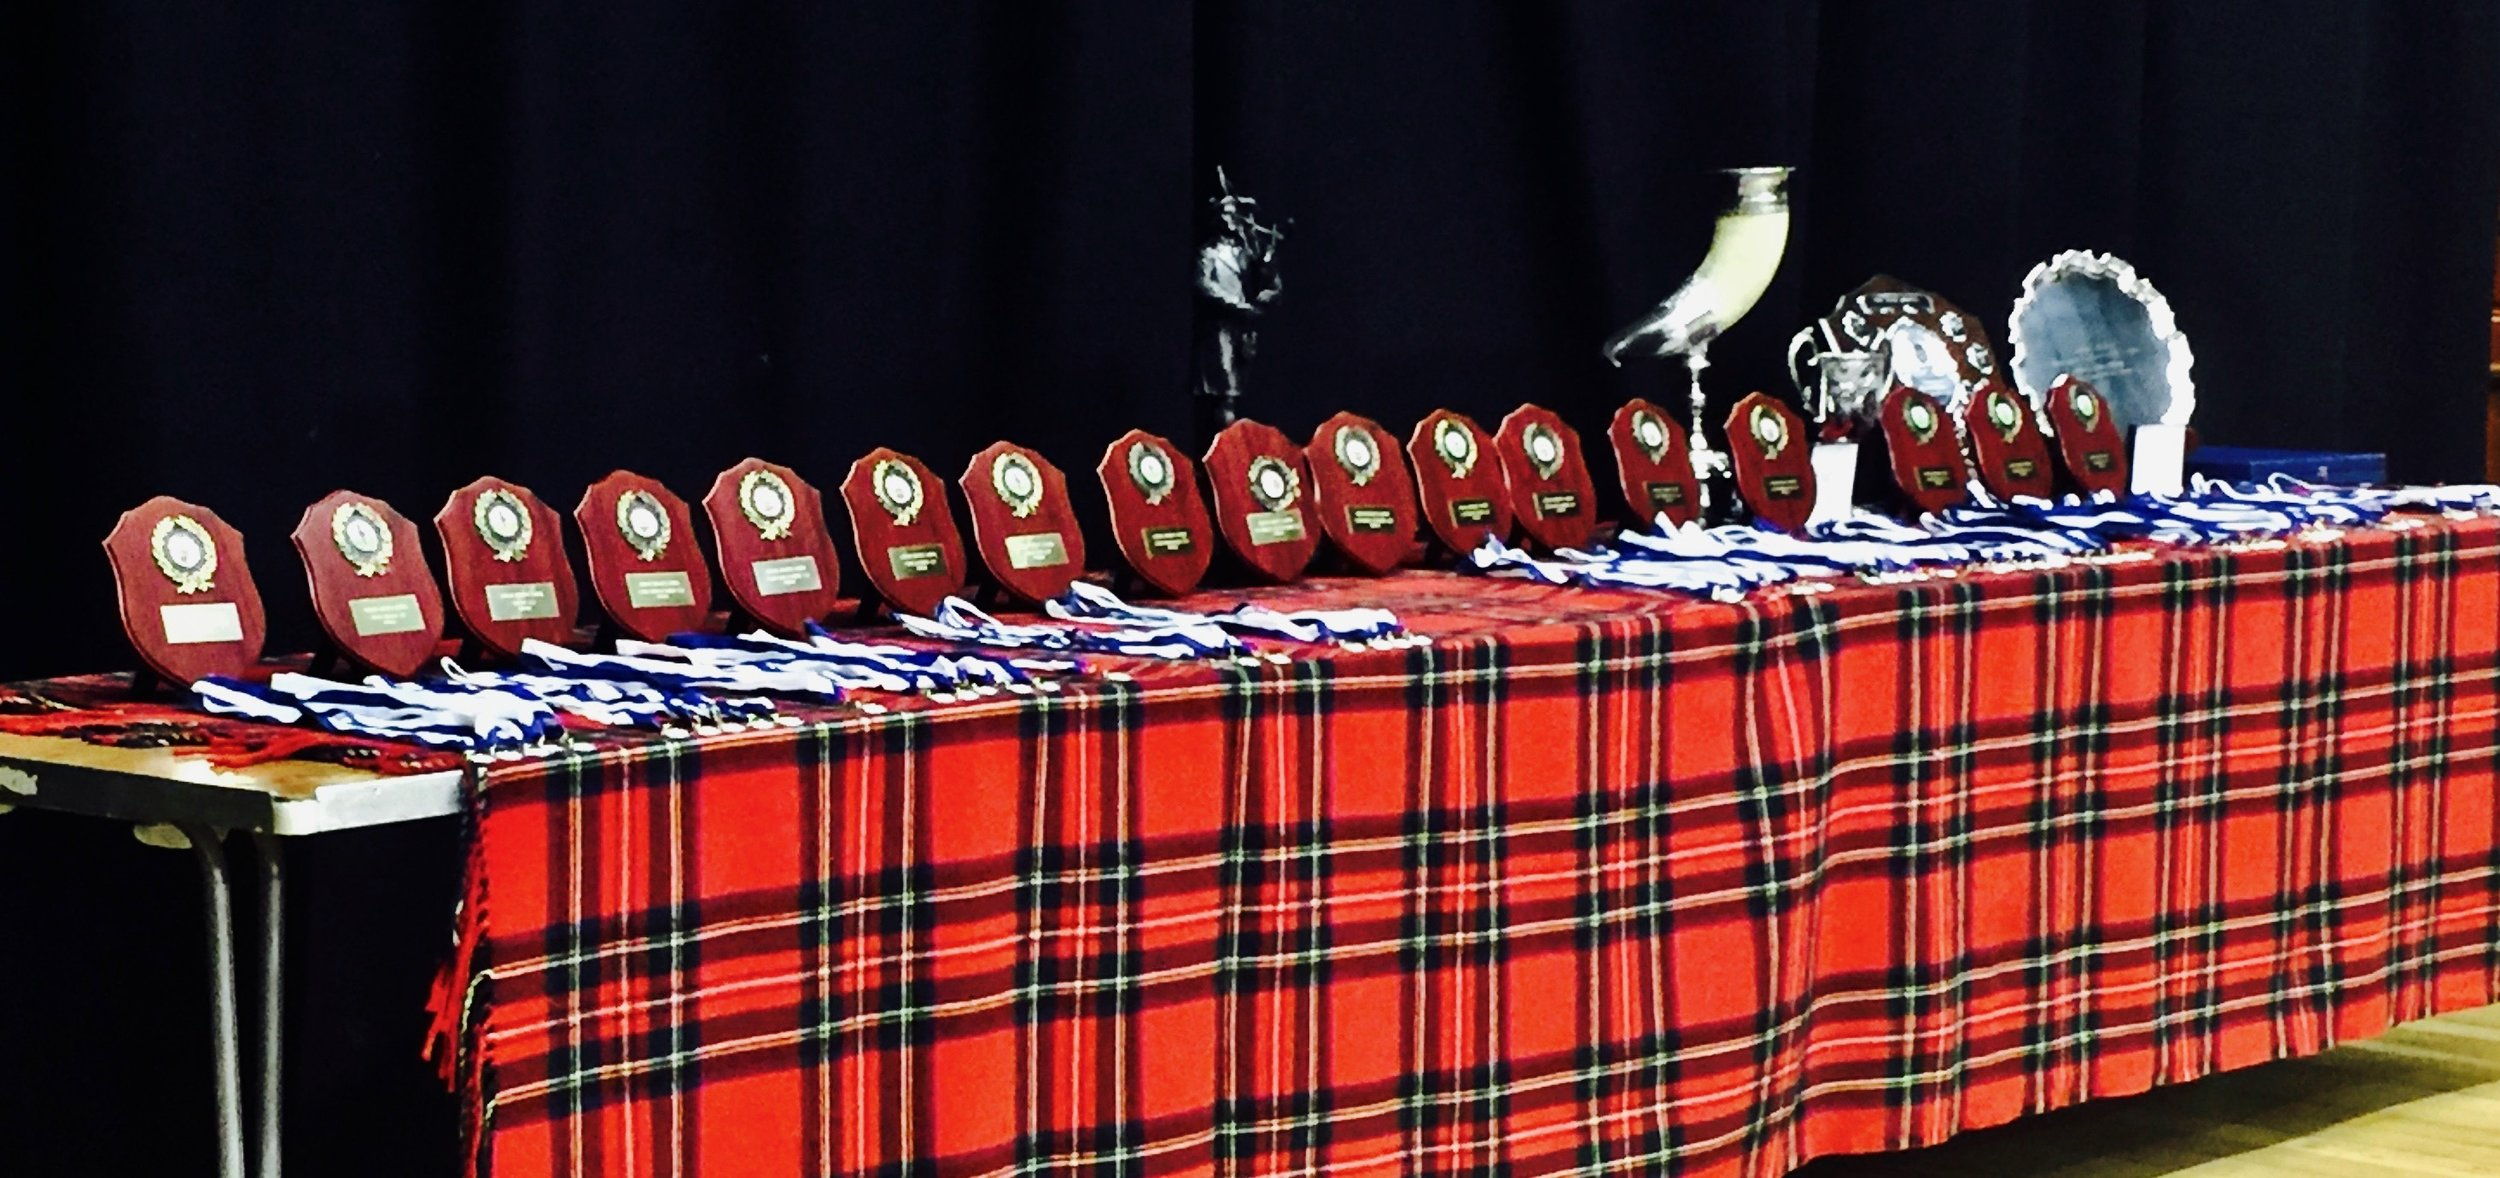 A fine array of trophies and prizes